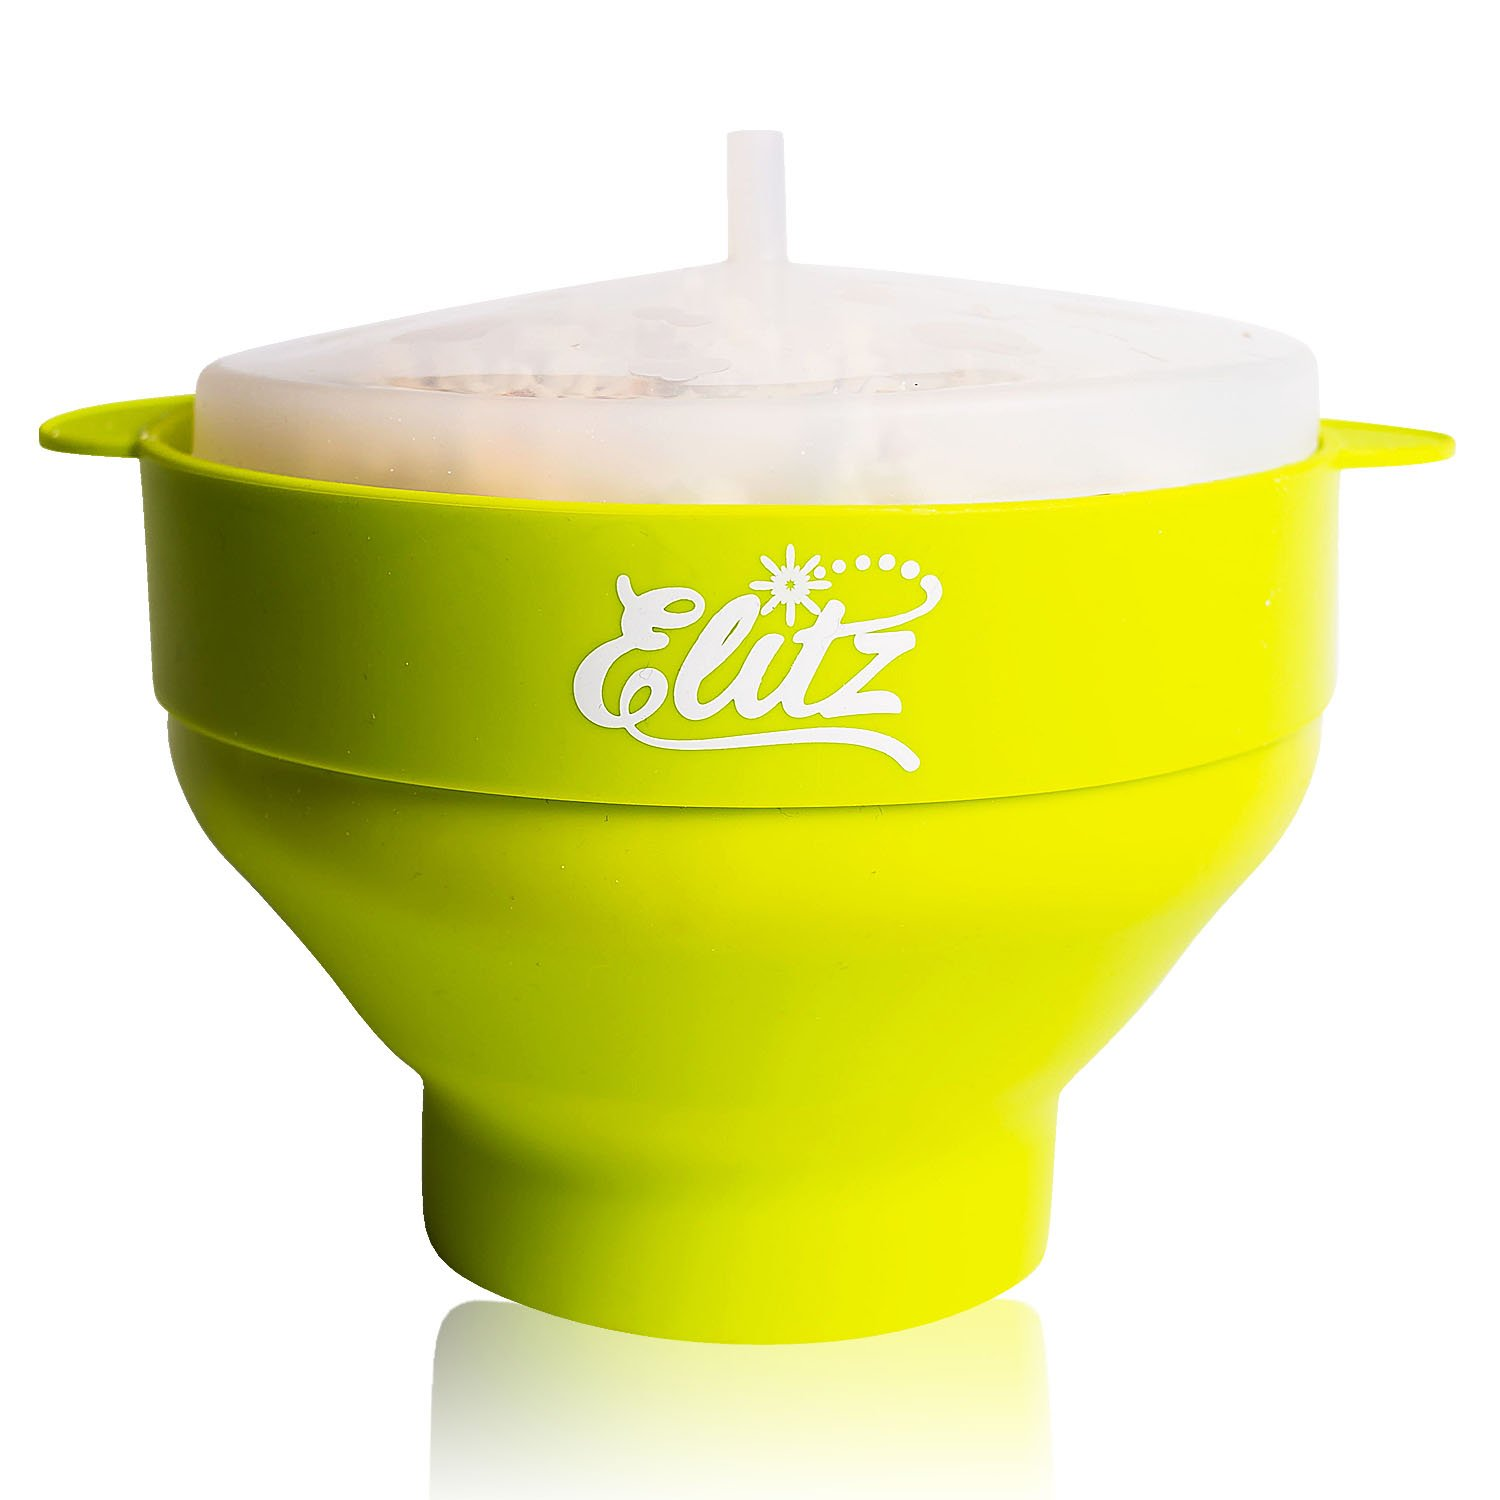 ELITZ Microwave Popcorn Popper with Lid | Natural, Oil-Free Air Popping | BPA Free Microwaveable, Collapsible Silicone Popcorn Maker Bowl | Hot, Gourmet Movie Theater Fresh Taste - Lime Punch Green